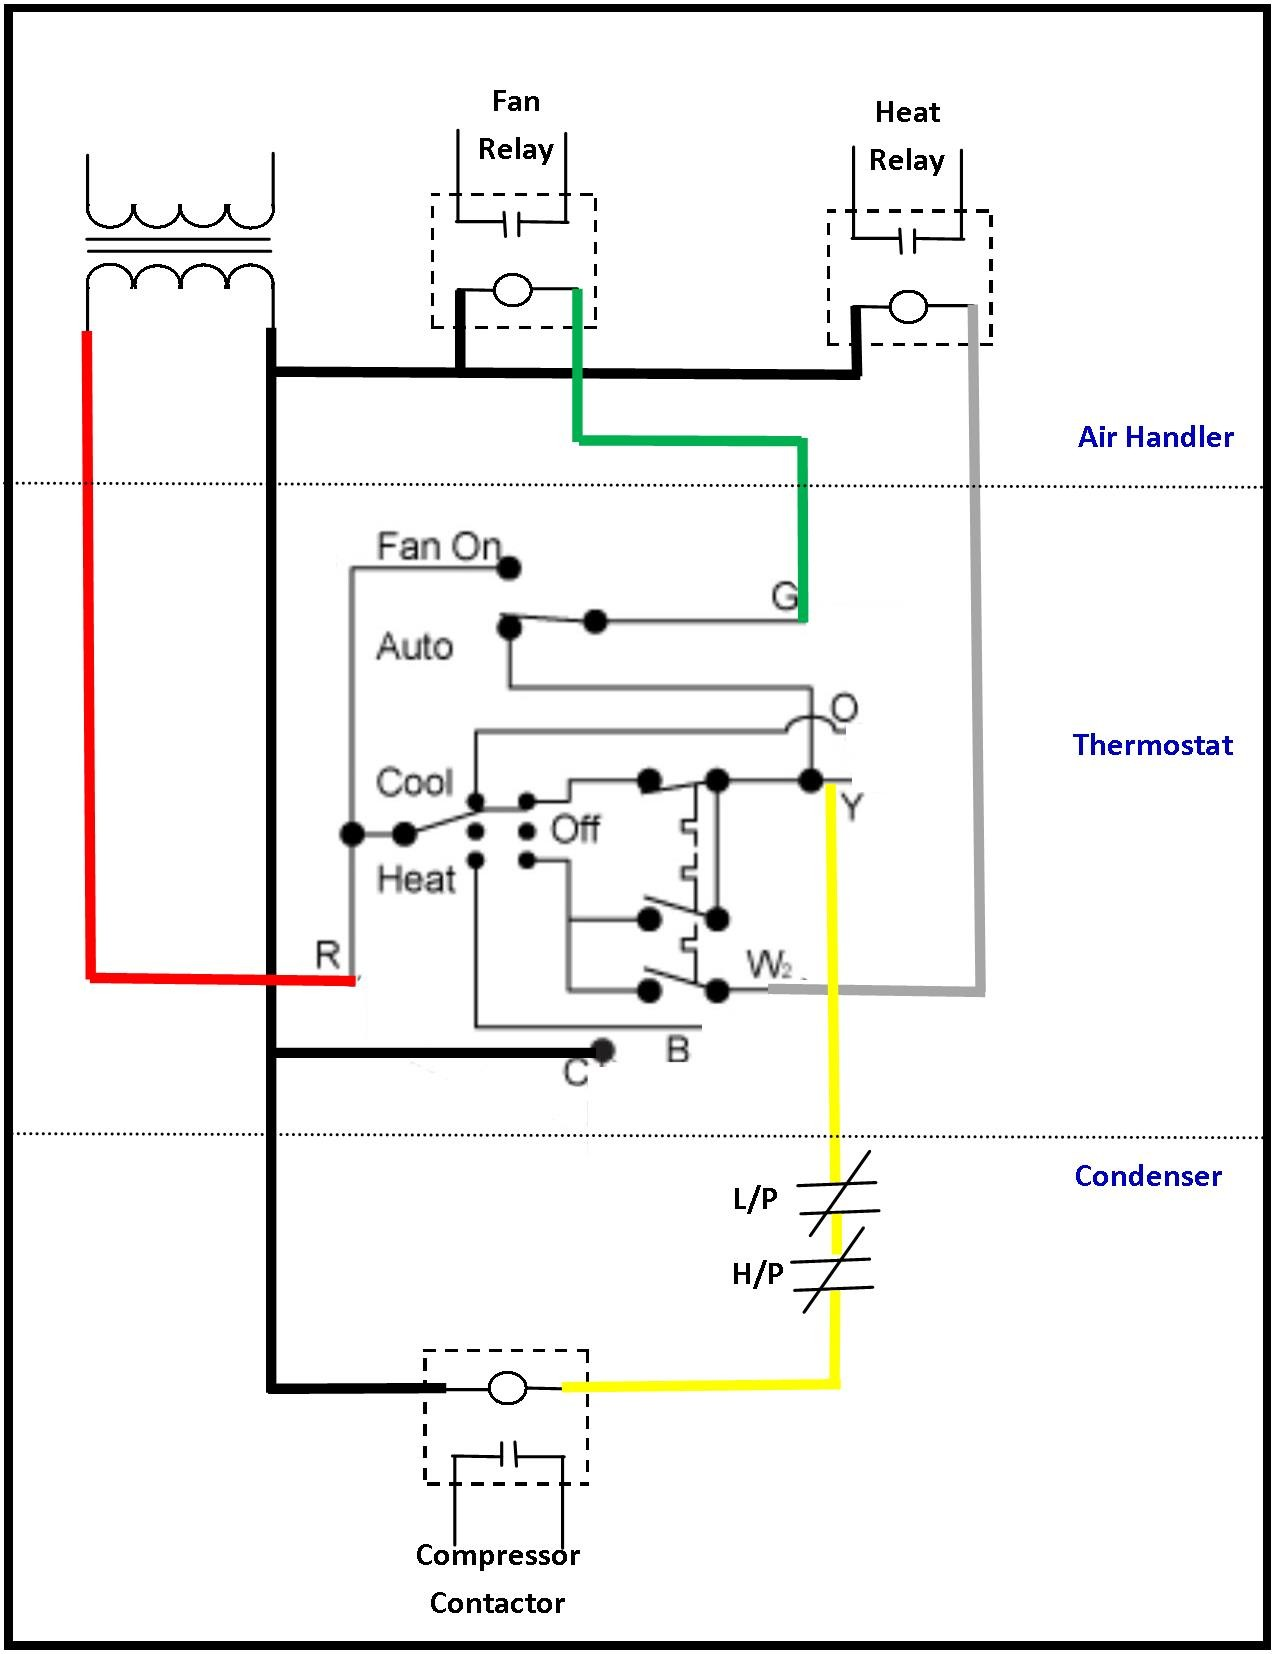 24v Transformer Wiring Diagram Voltage Wire Center Dual For Wires Besides 24 Volt Ac Rh Pulluo Co 24vac 480v